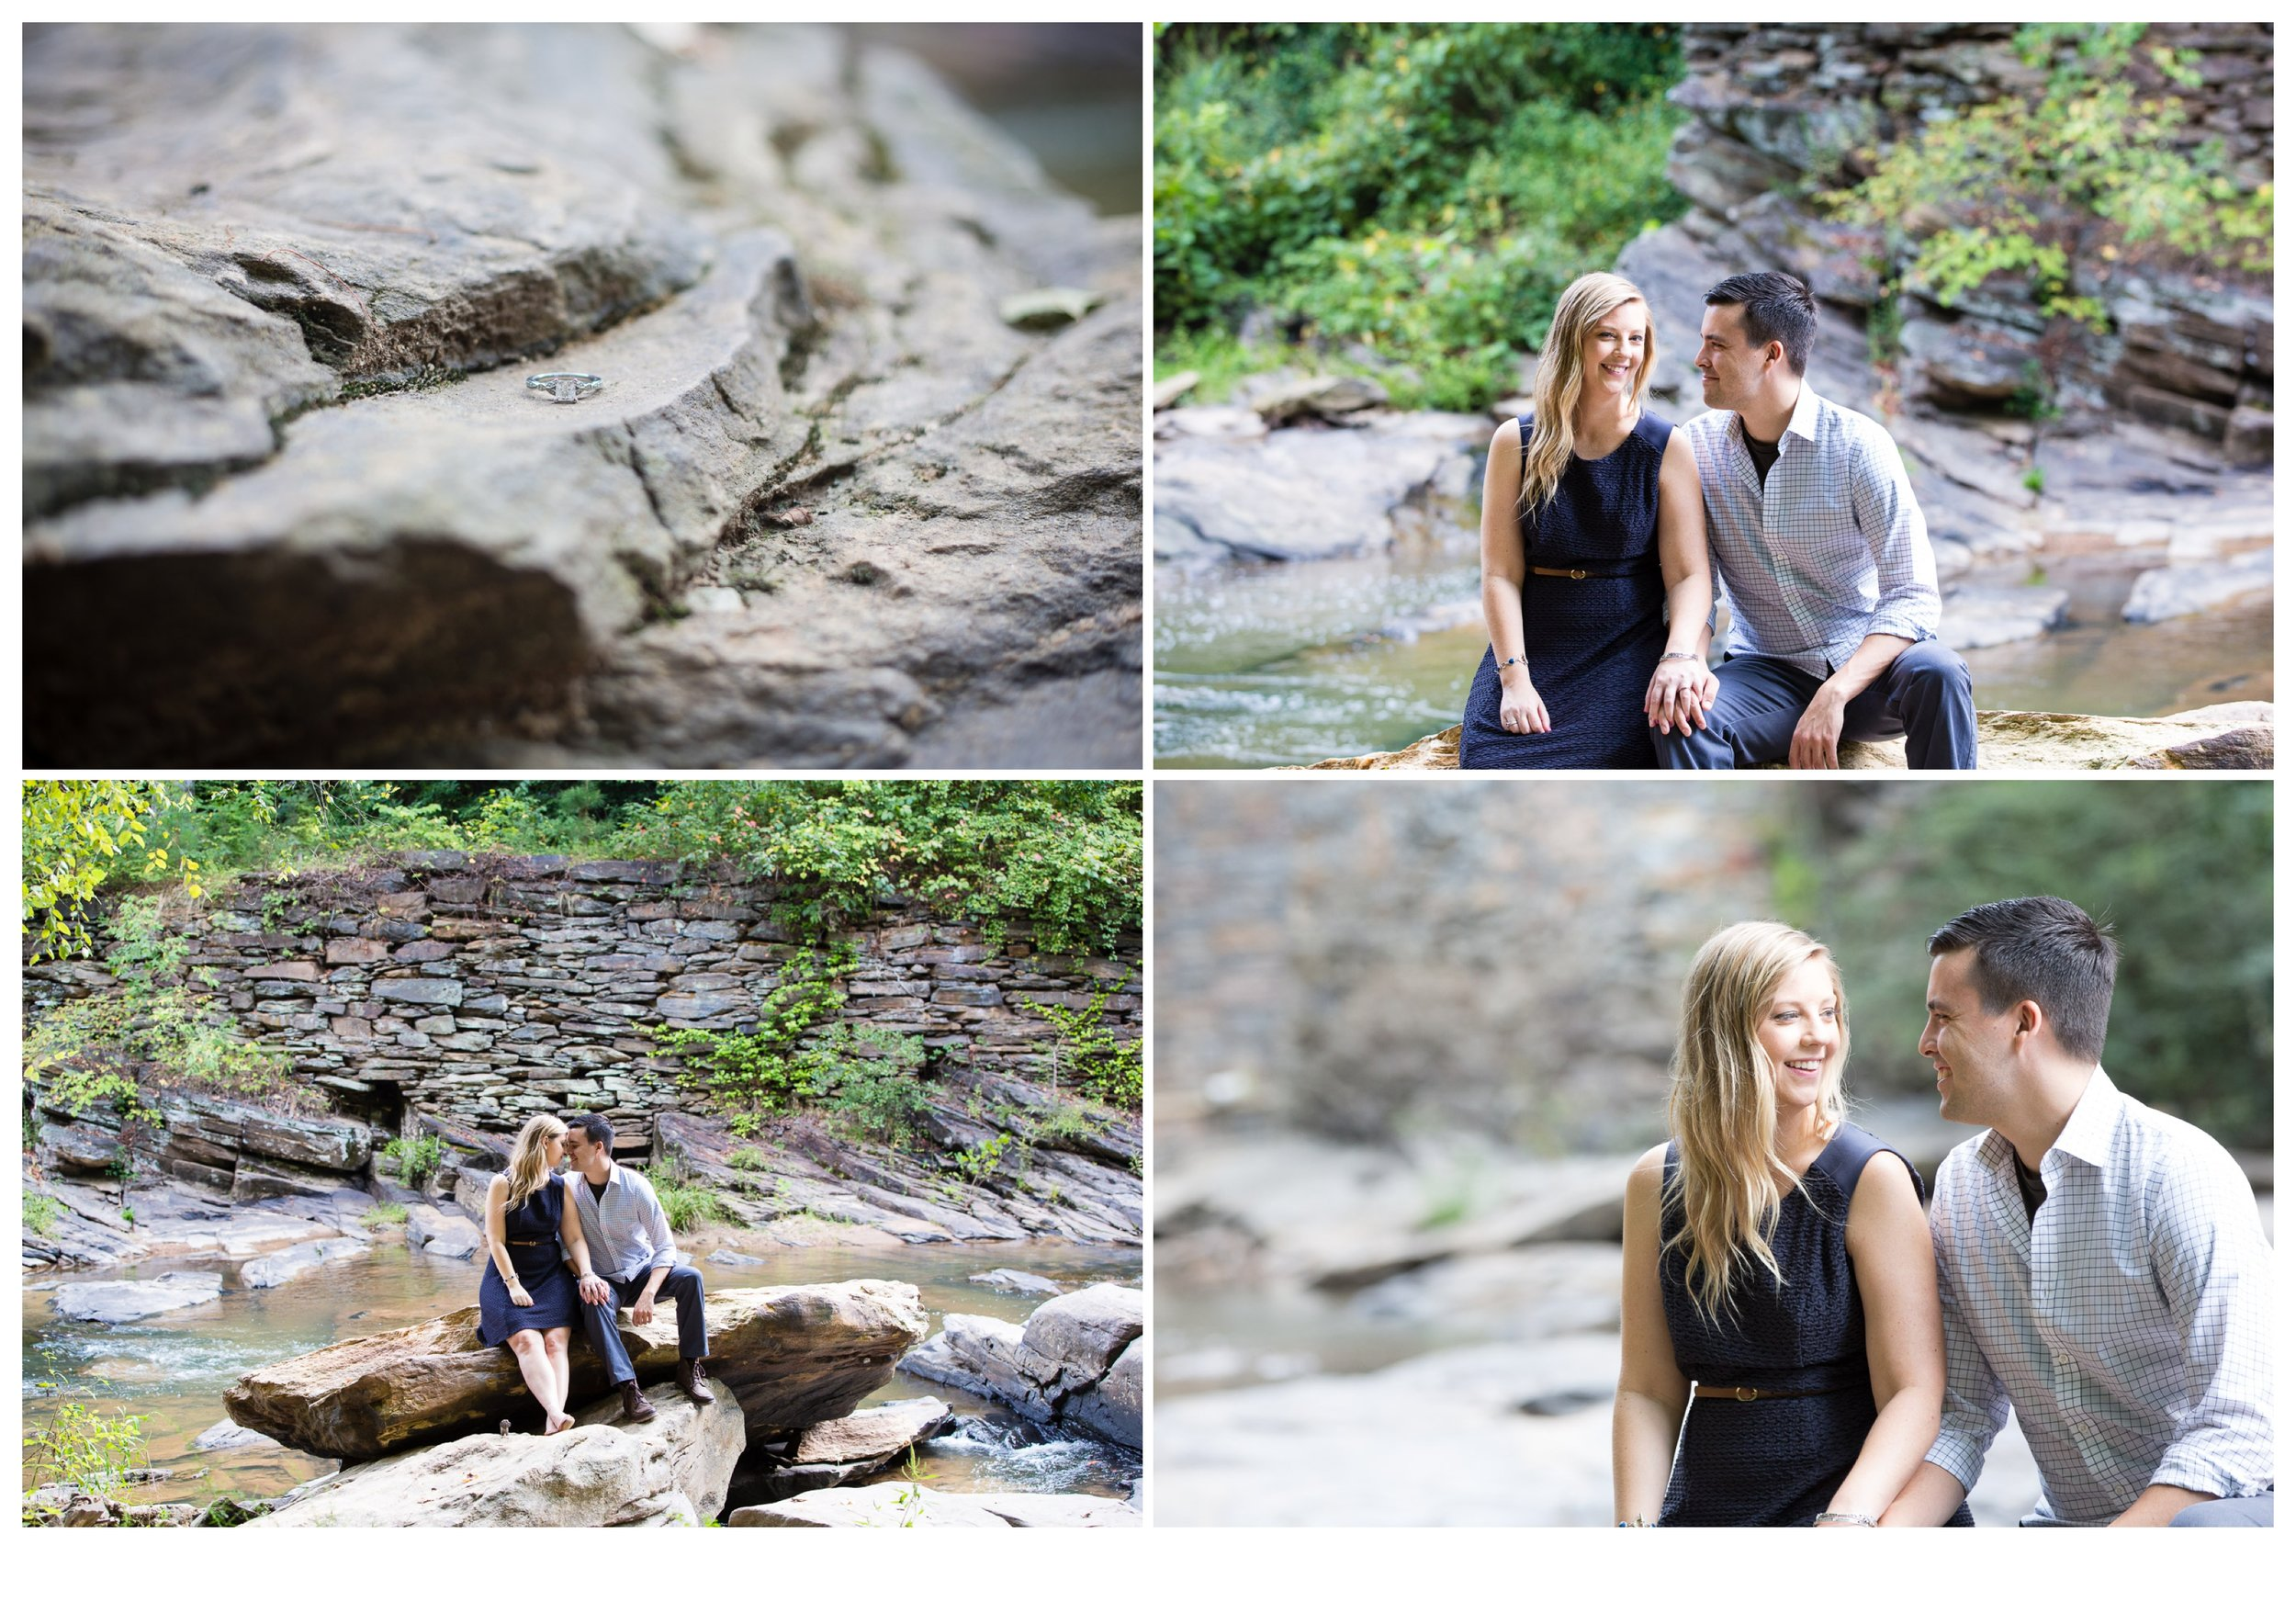 Sope Creek Engagement Photos